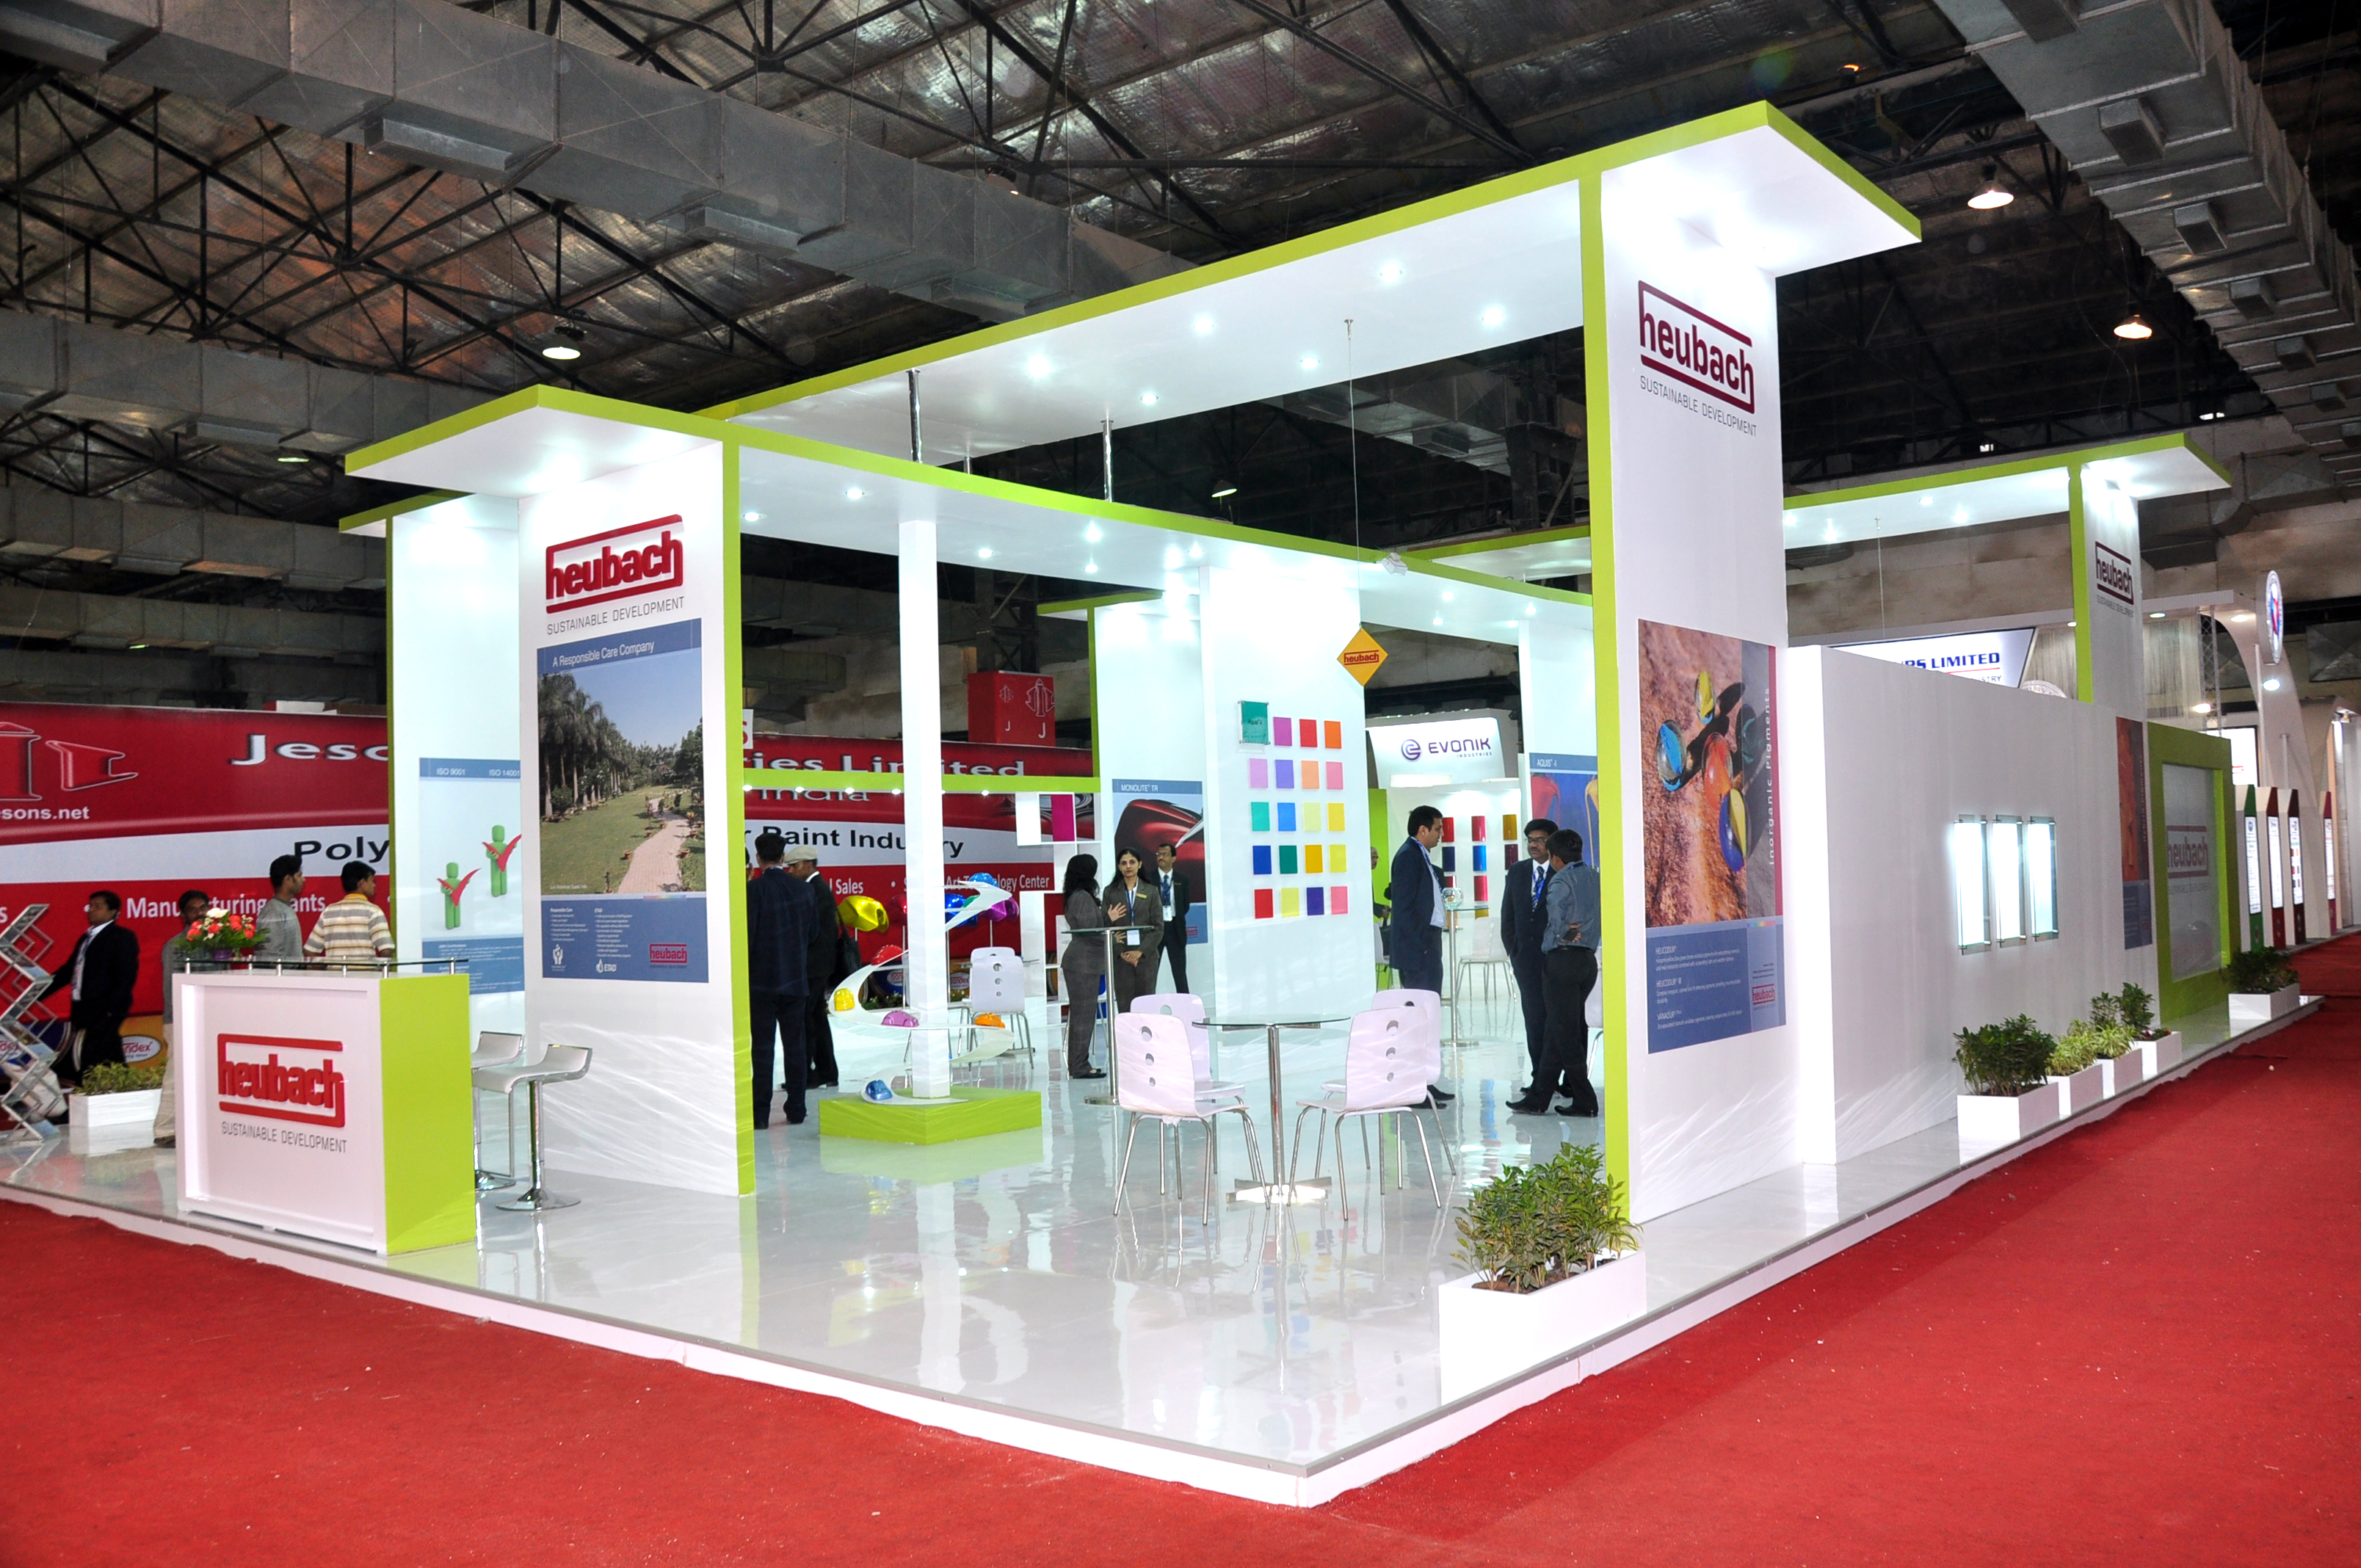 Stall Ideas For Exhibition : Promote your brand with creative and convenient exhibition